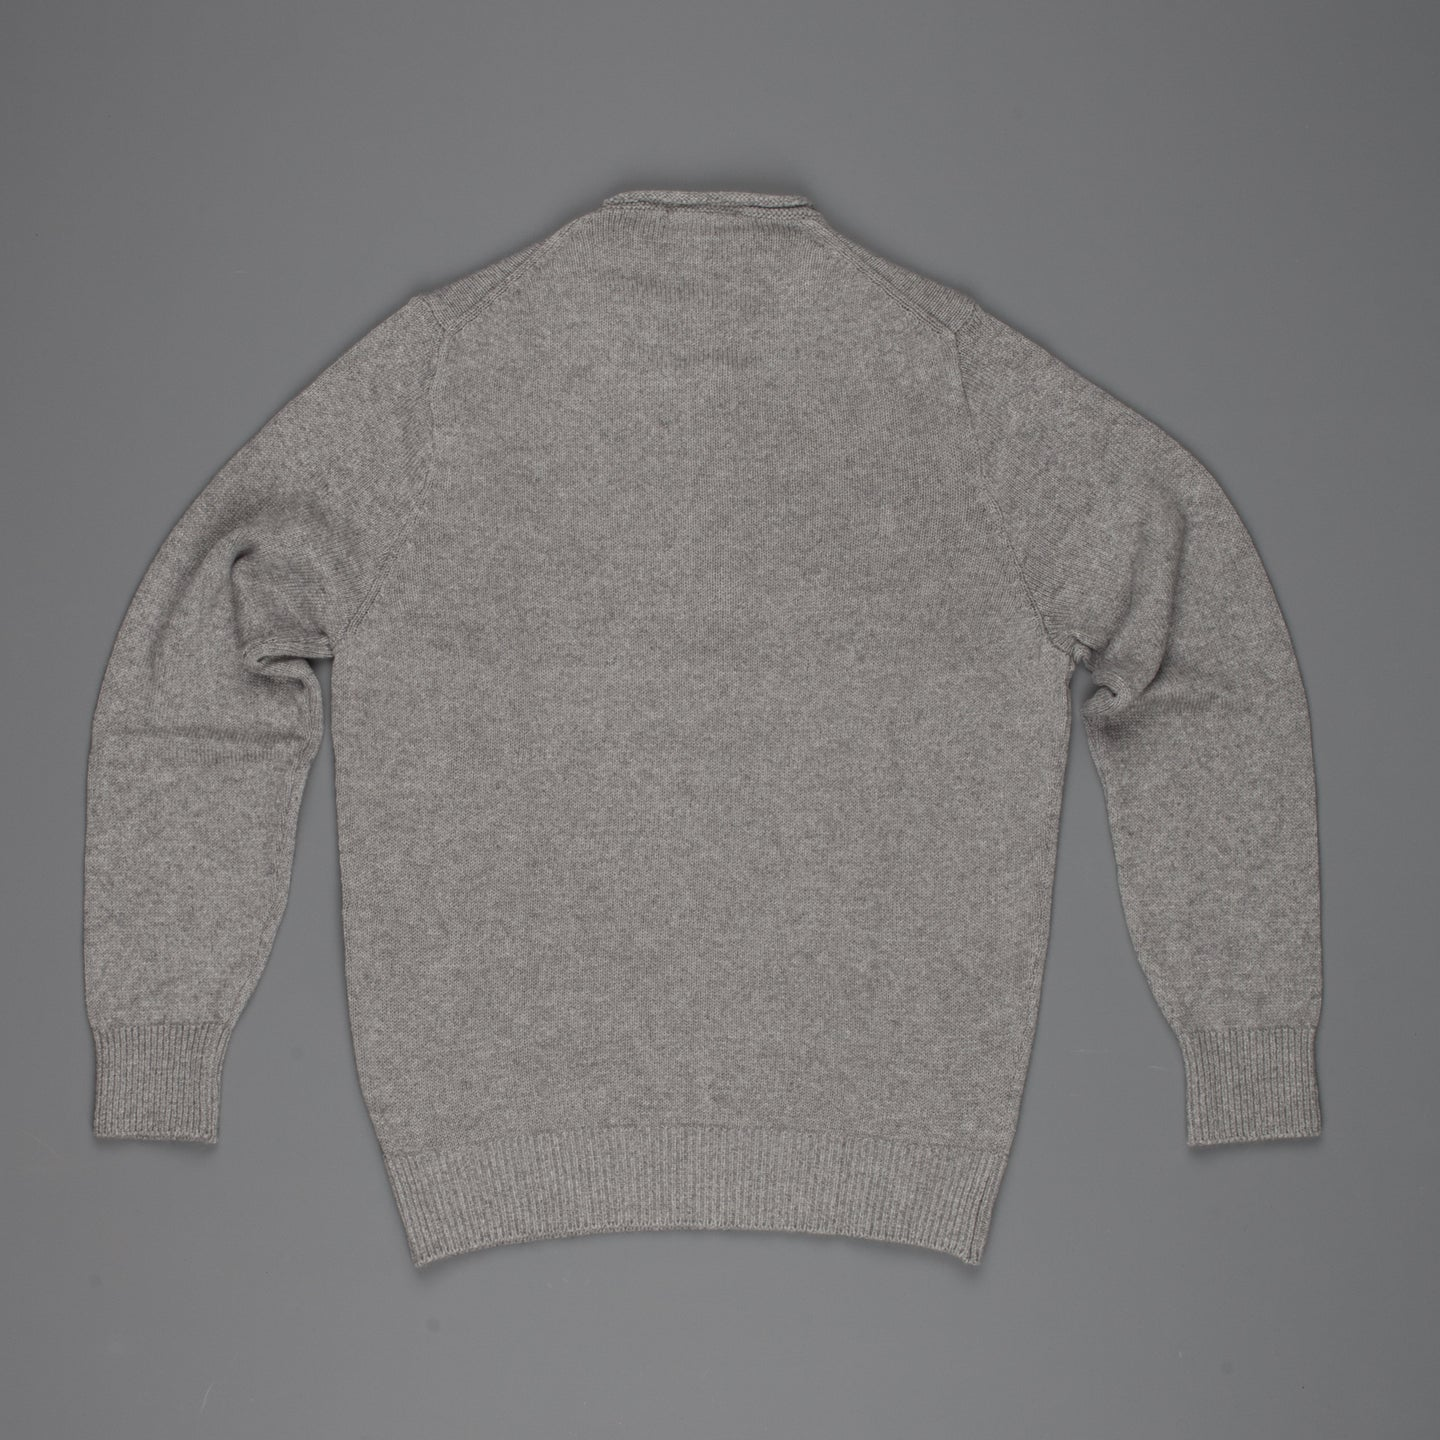 Inis Meáin Currach sweater cotton silk cashmere City